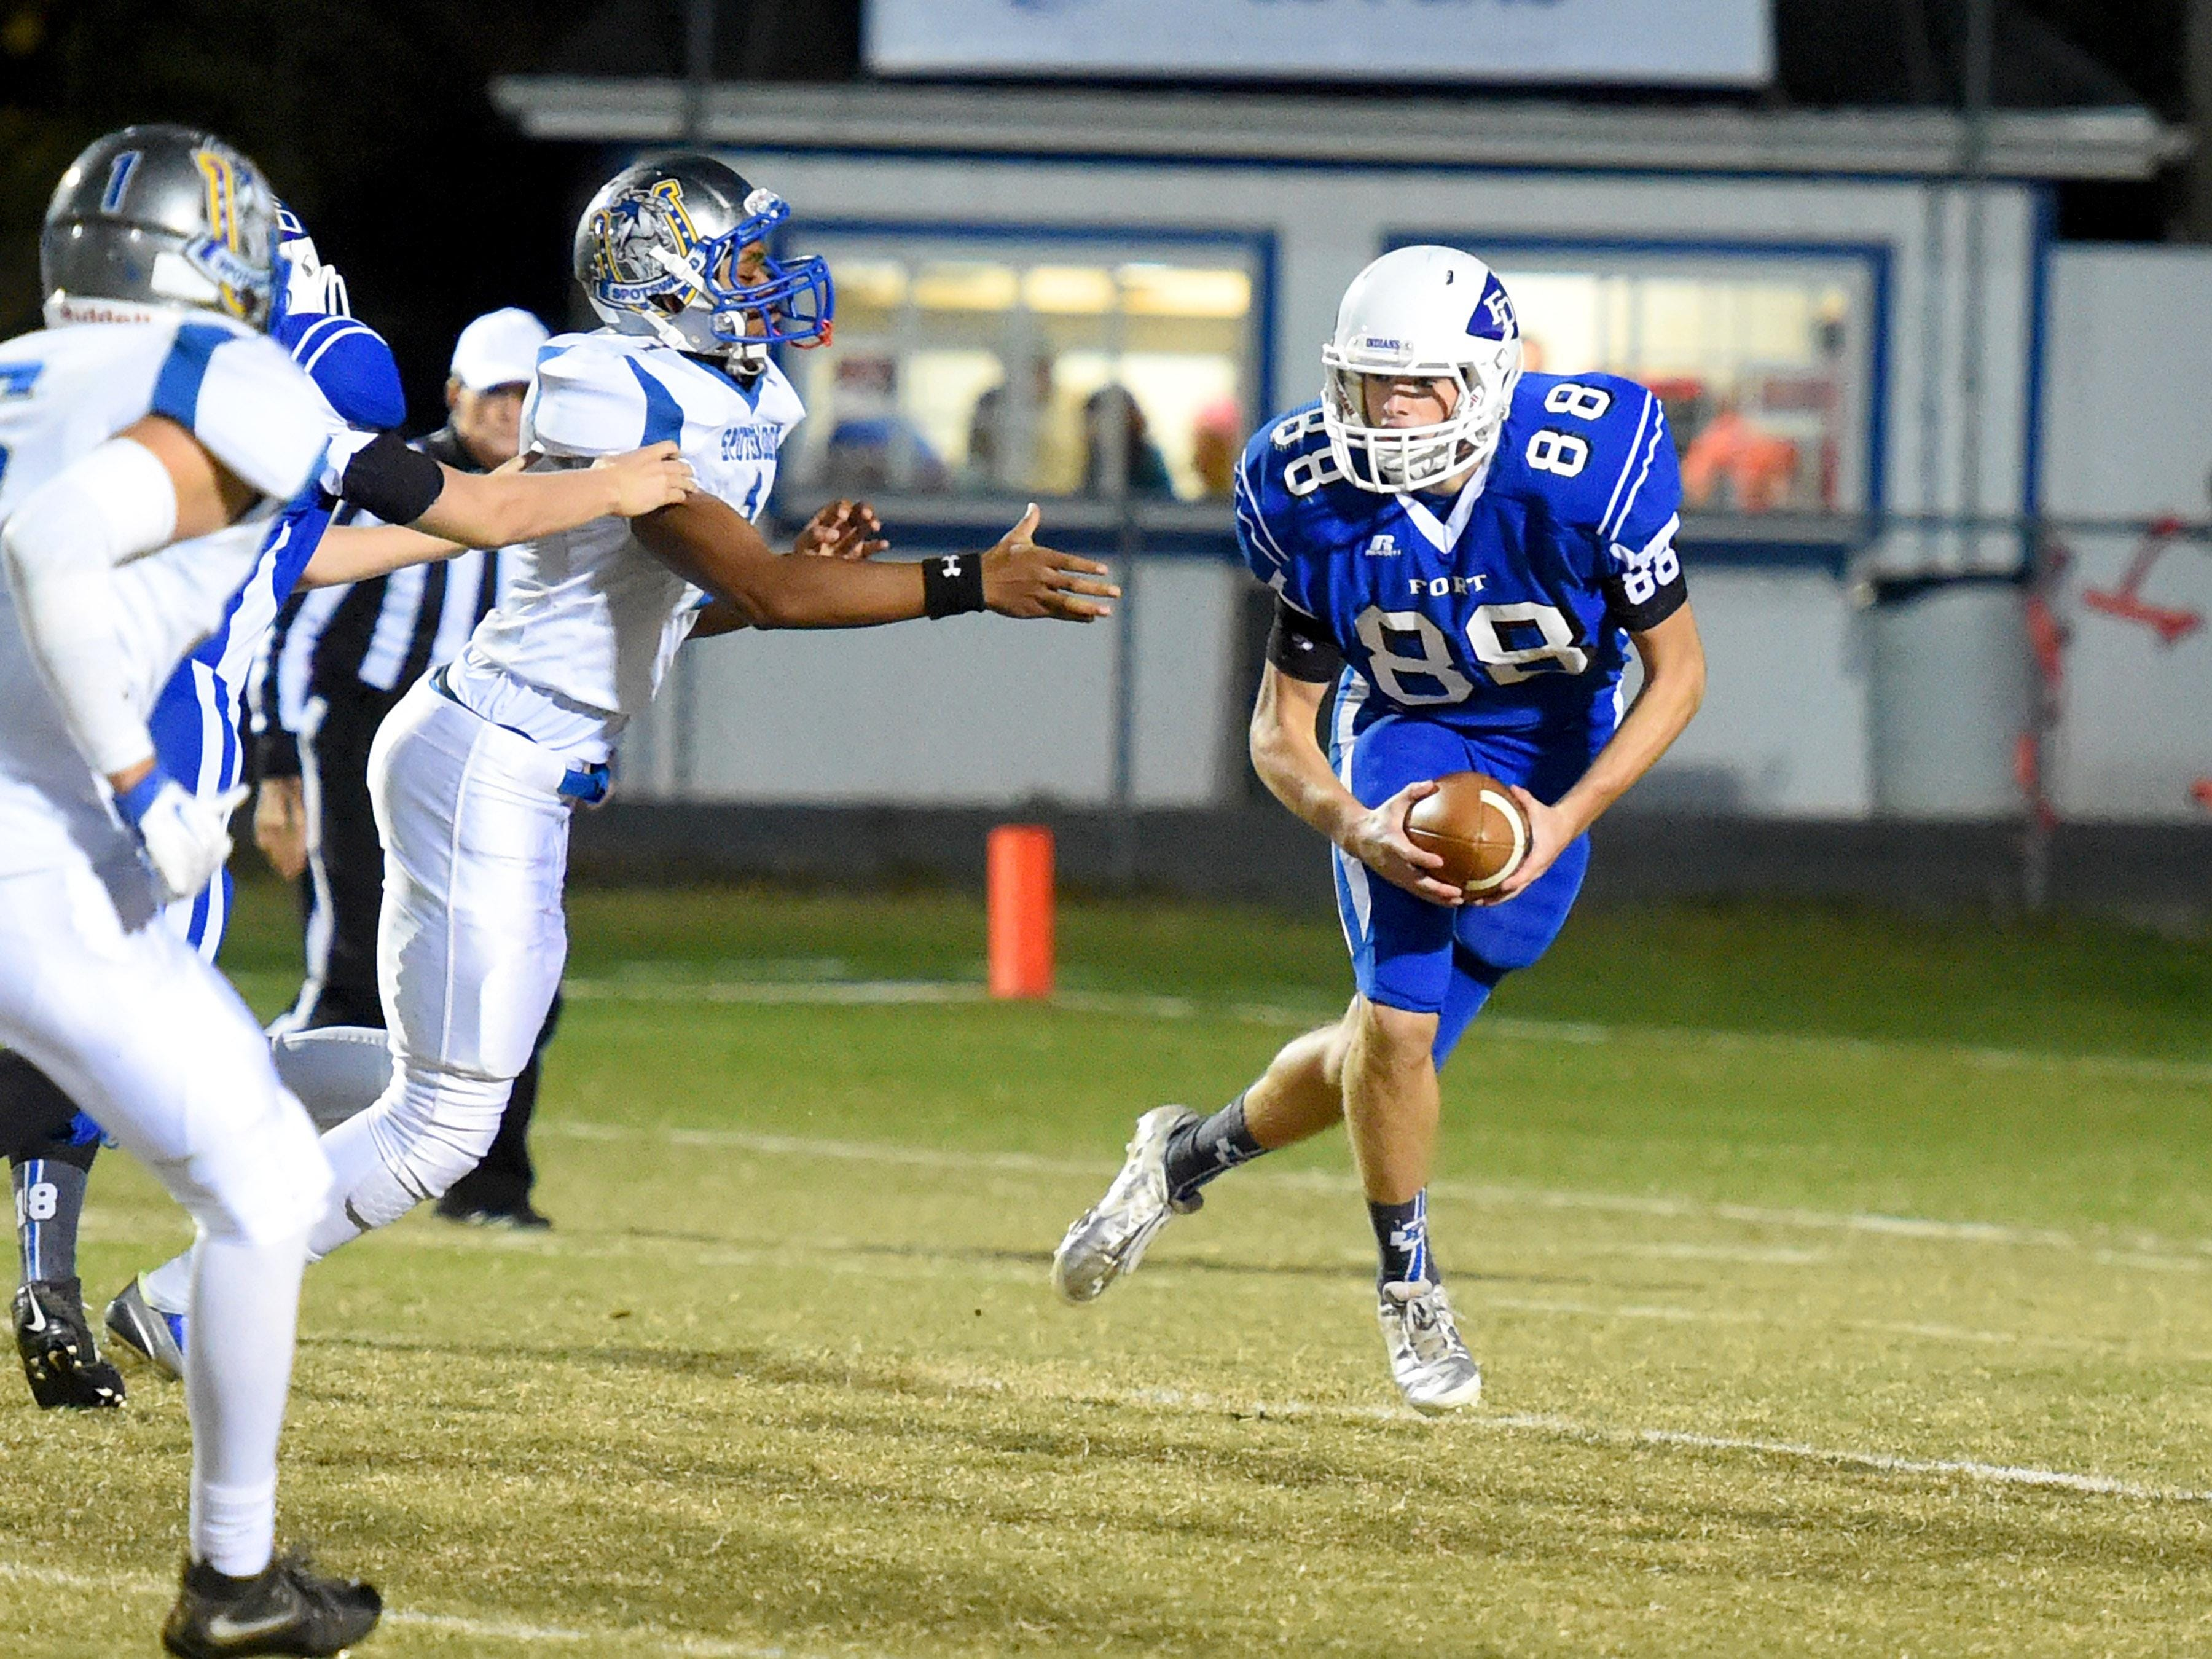 Fort Defiance's Lane McAllister cuts to the side with the ball around the Spotswood defense during their game in Fort Defiance on Friday.